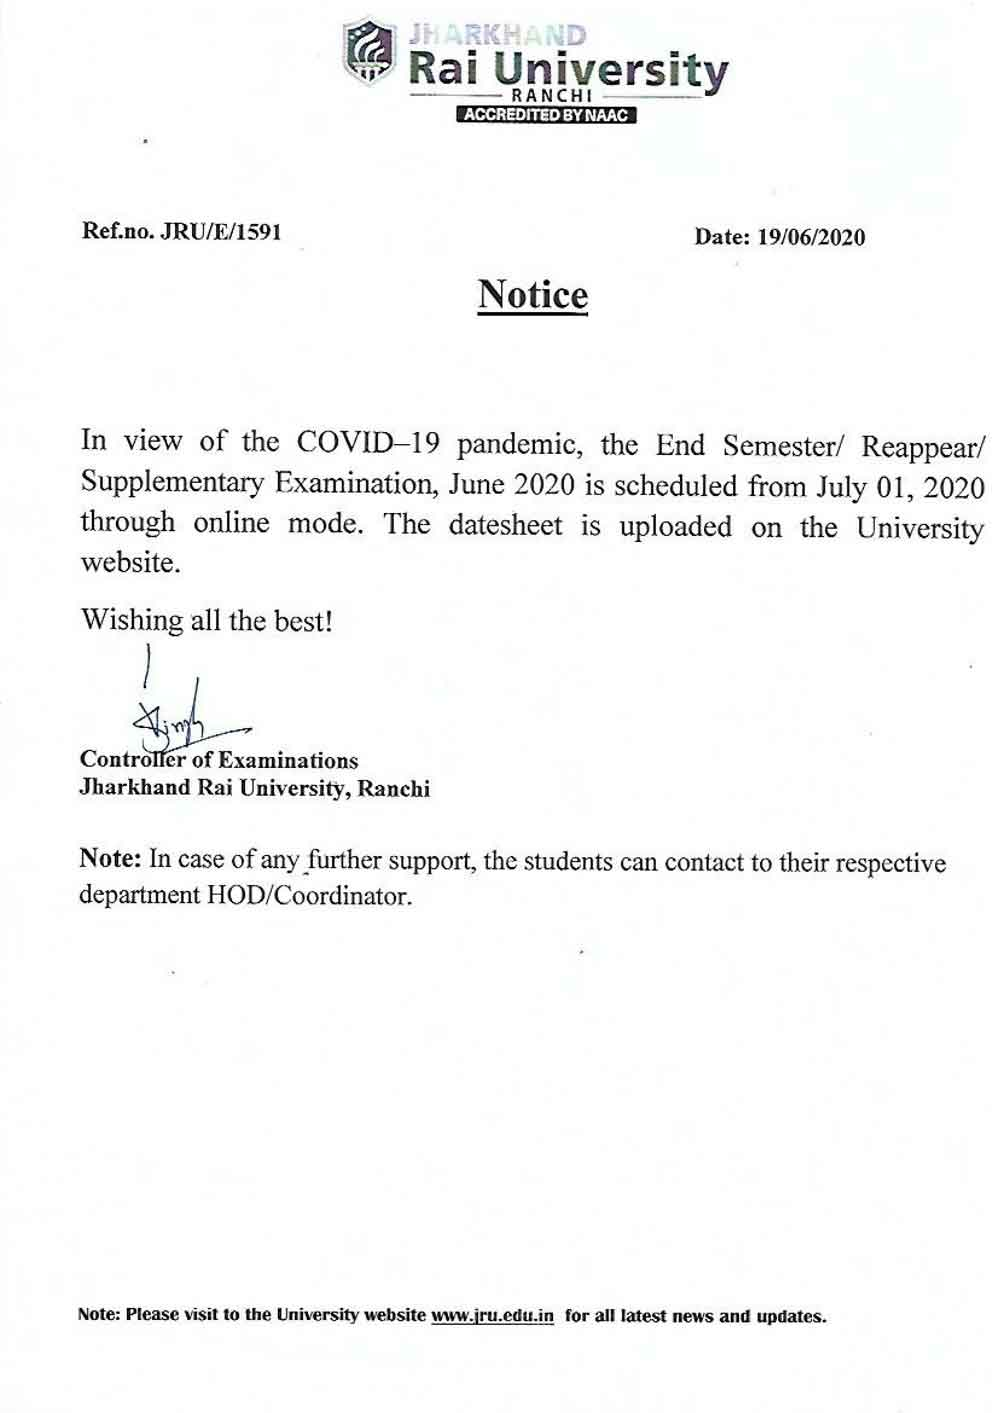 Notice-Semester Reappear Supplementary-Exam